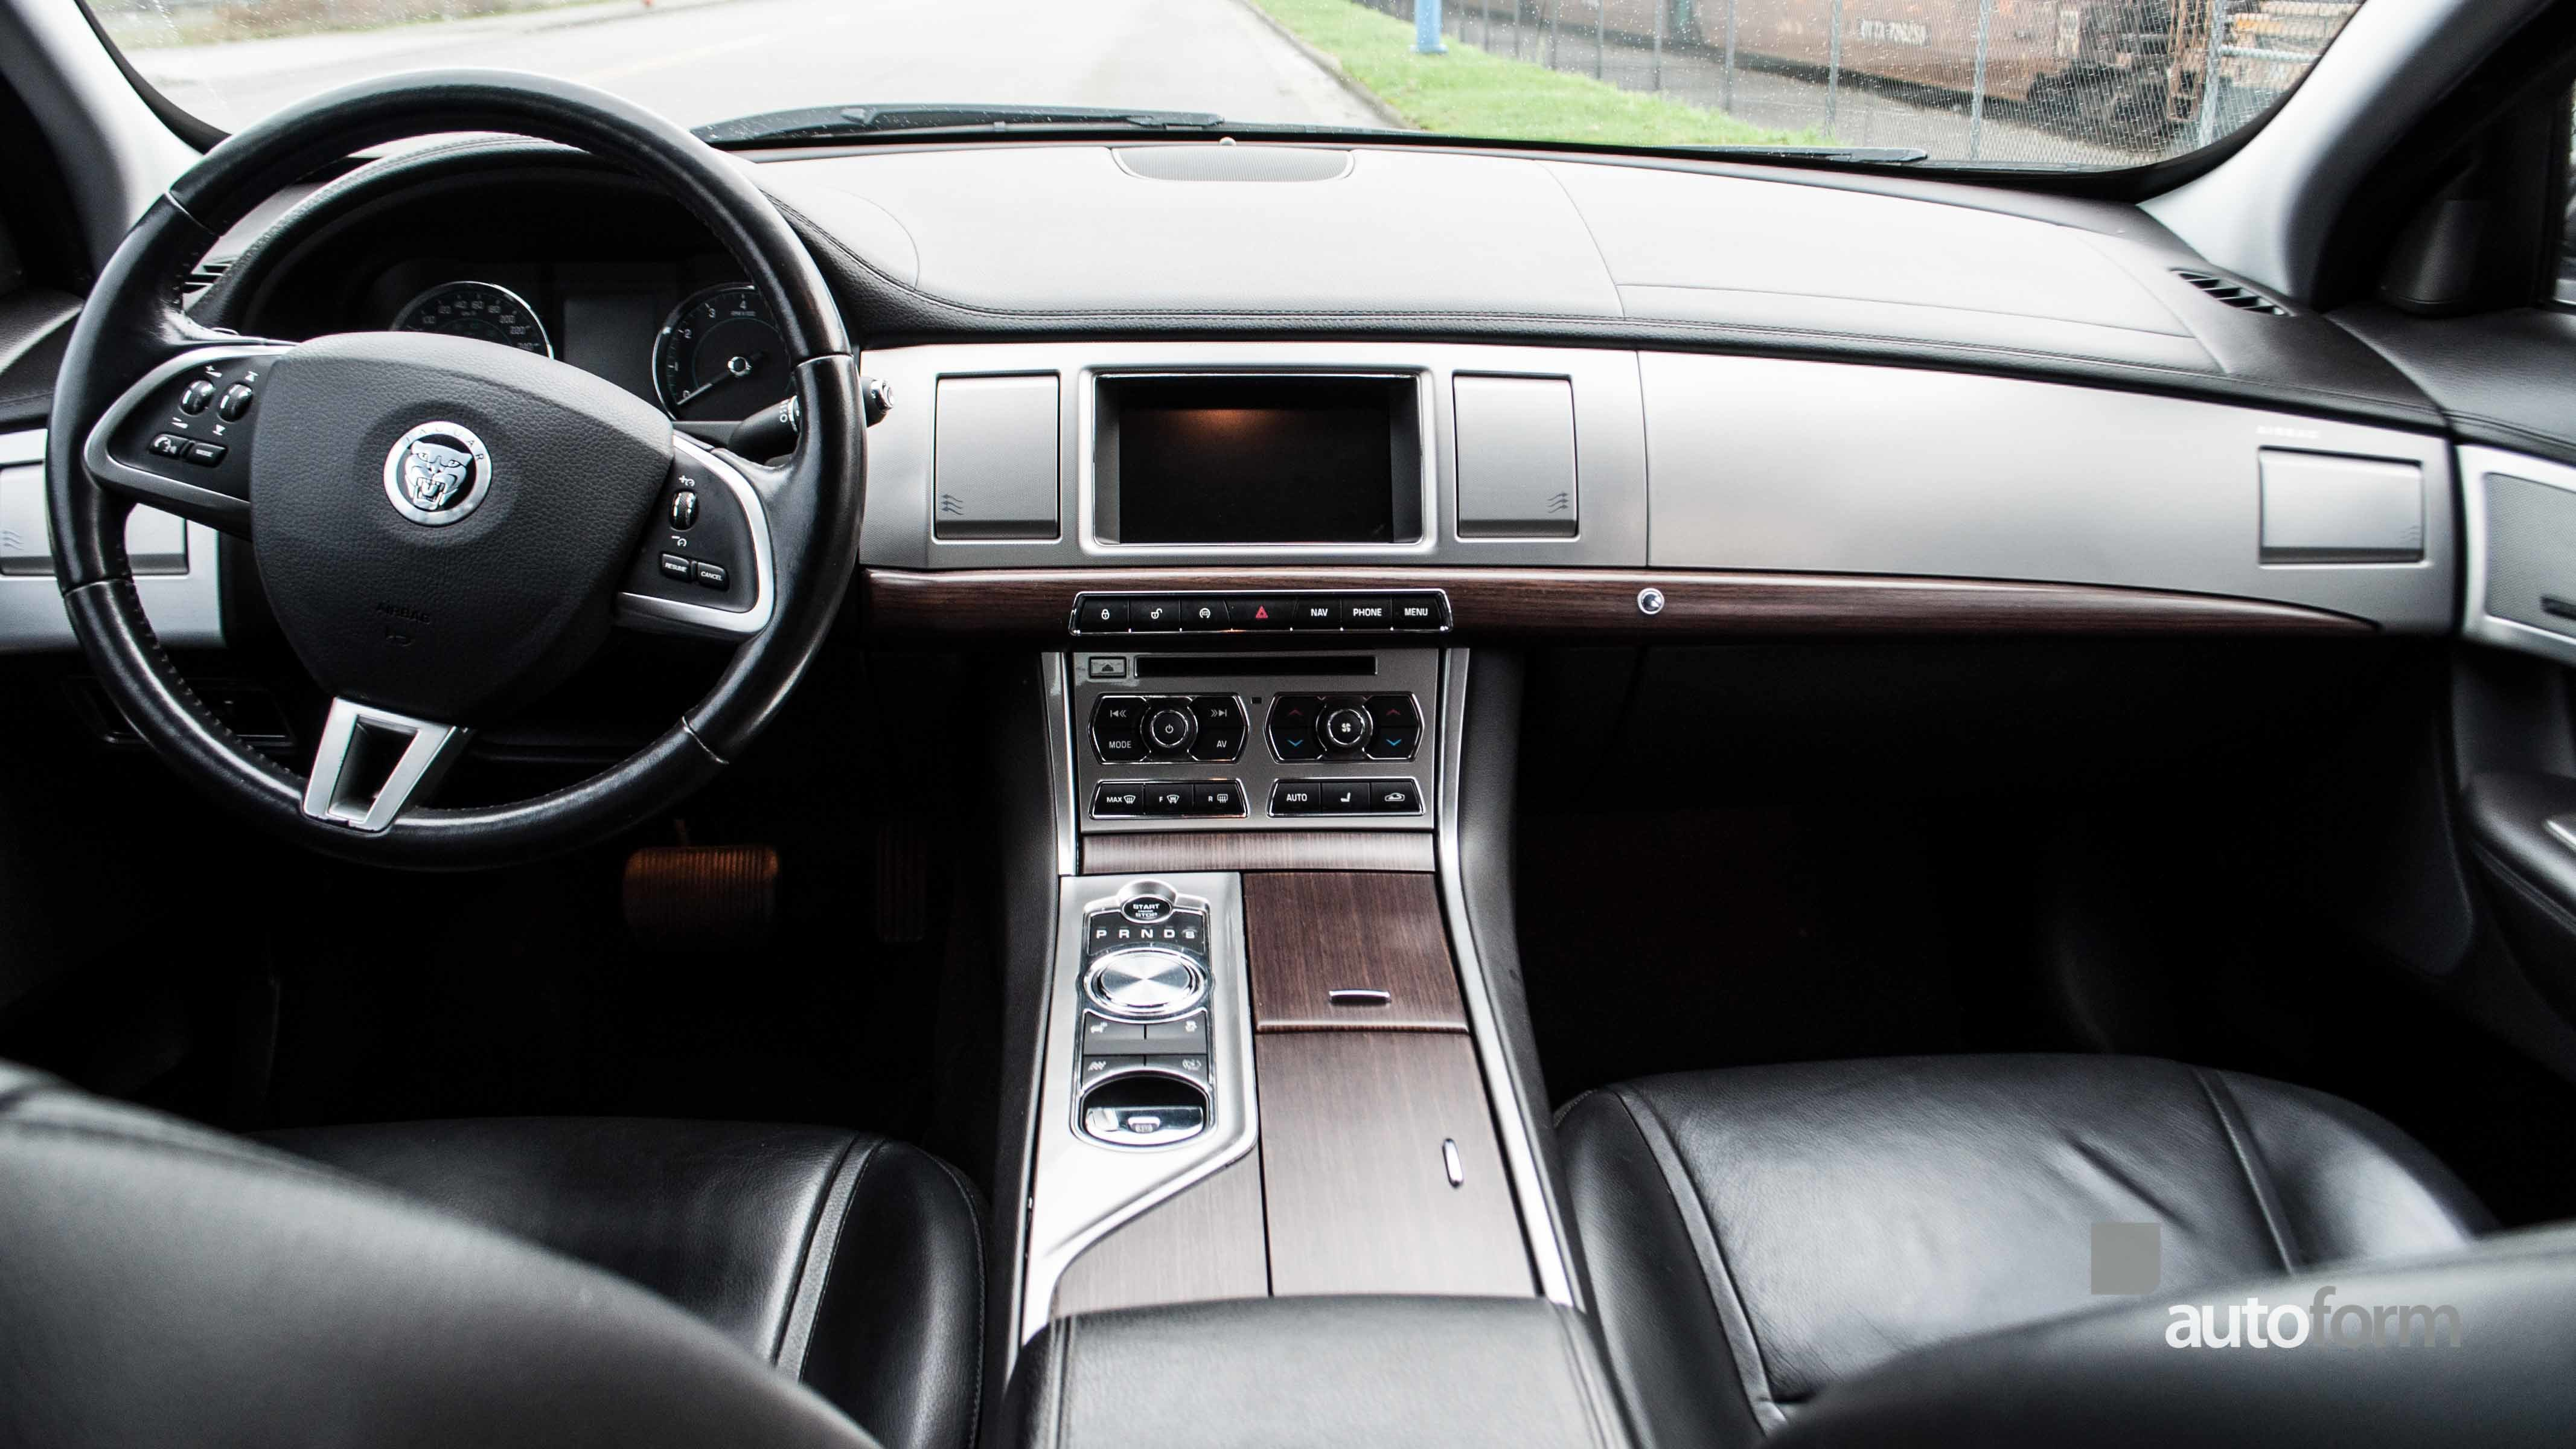 for jaguar sale image drive wheel diesel america location jag bound with awd north xf